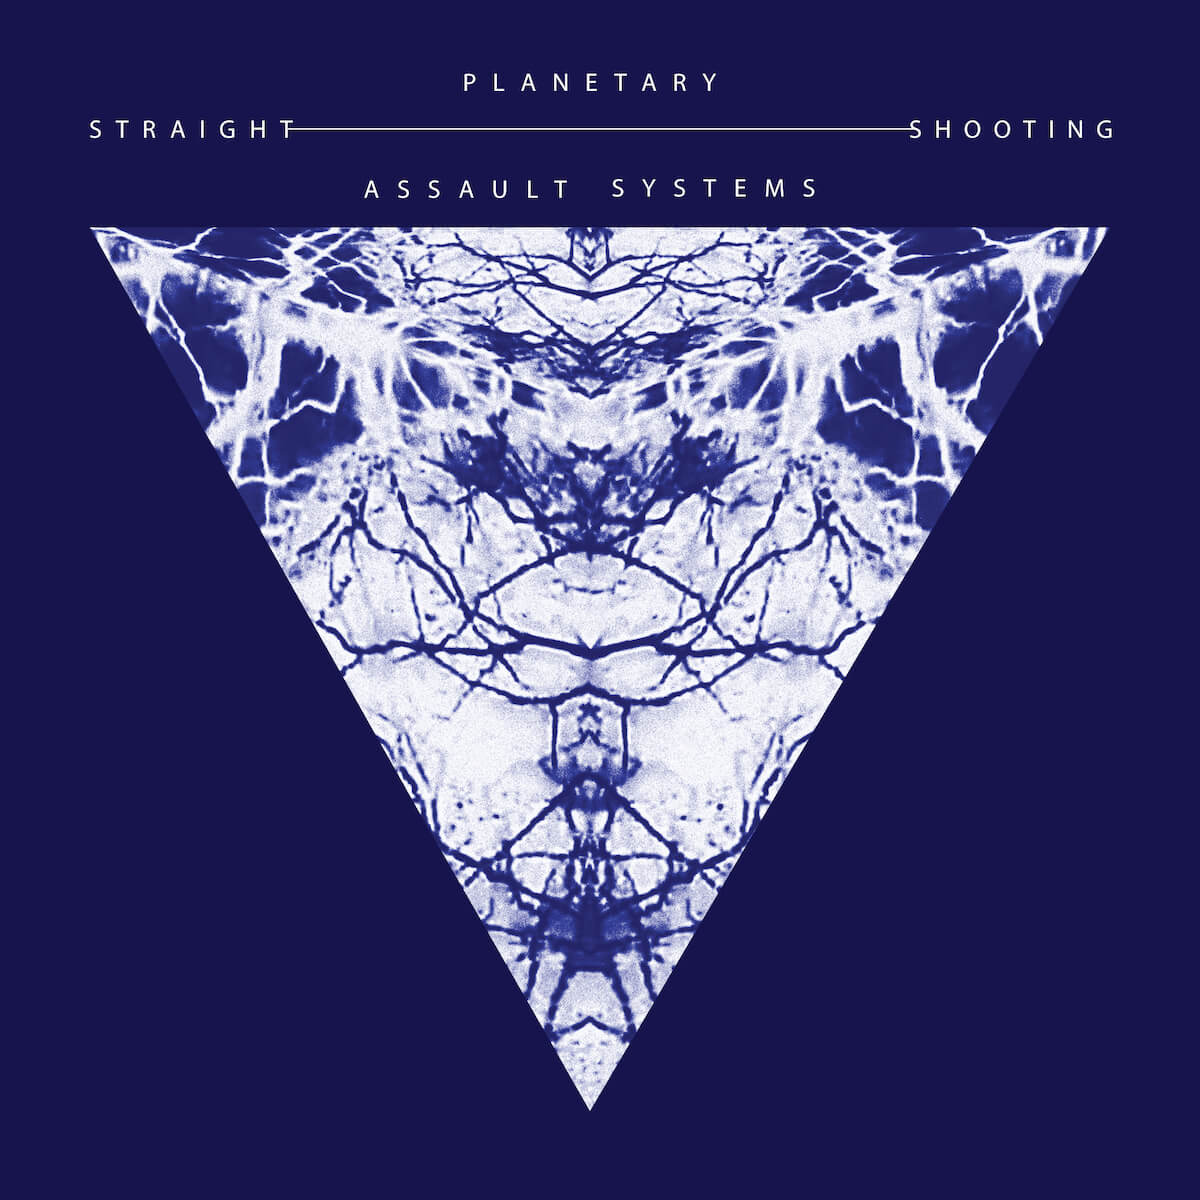 Planetary Assault Systems - Straight Shooting EP